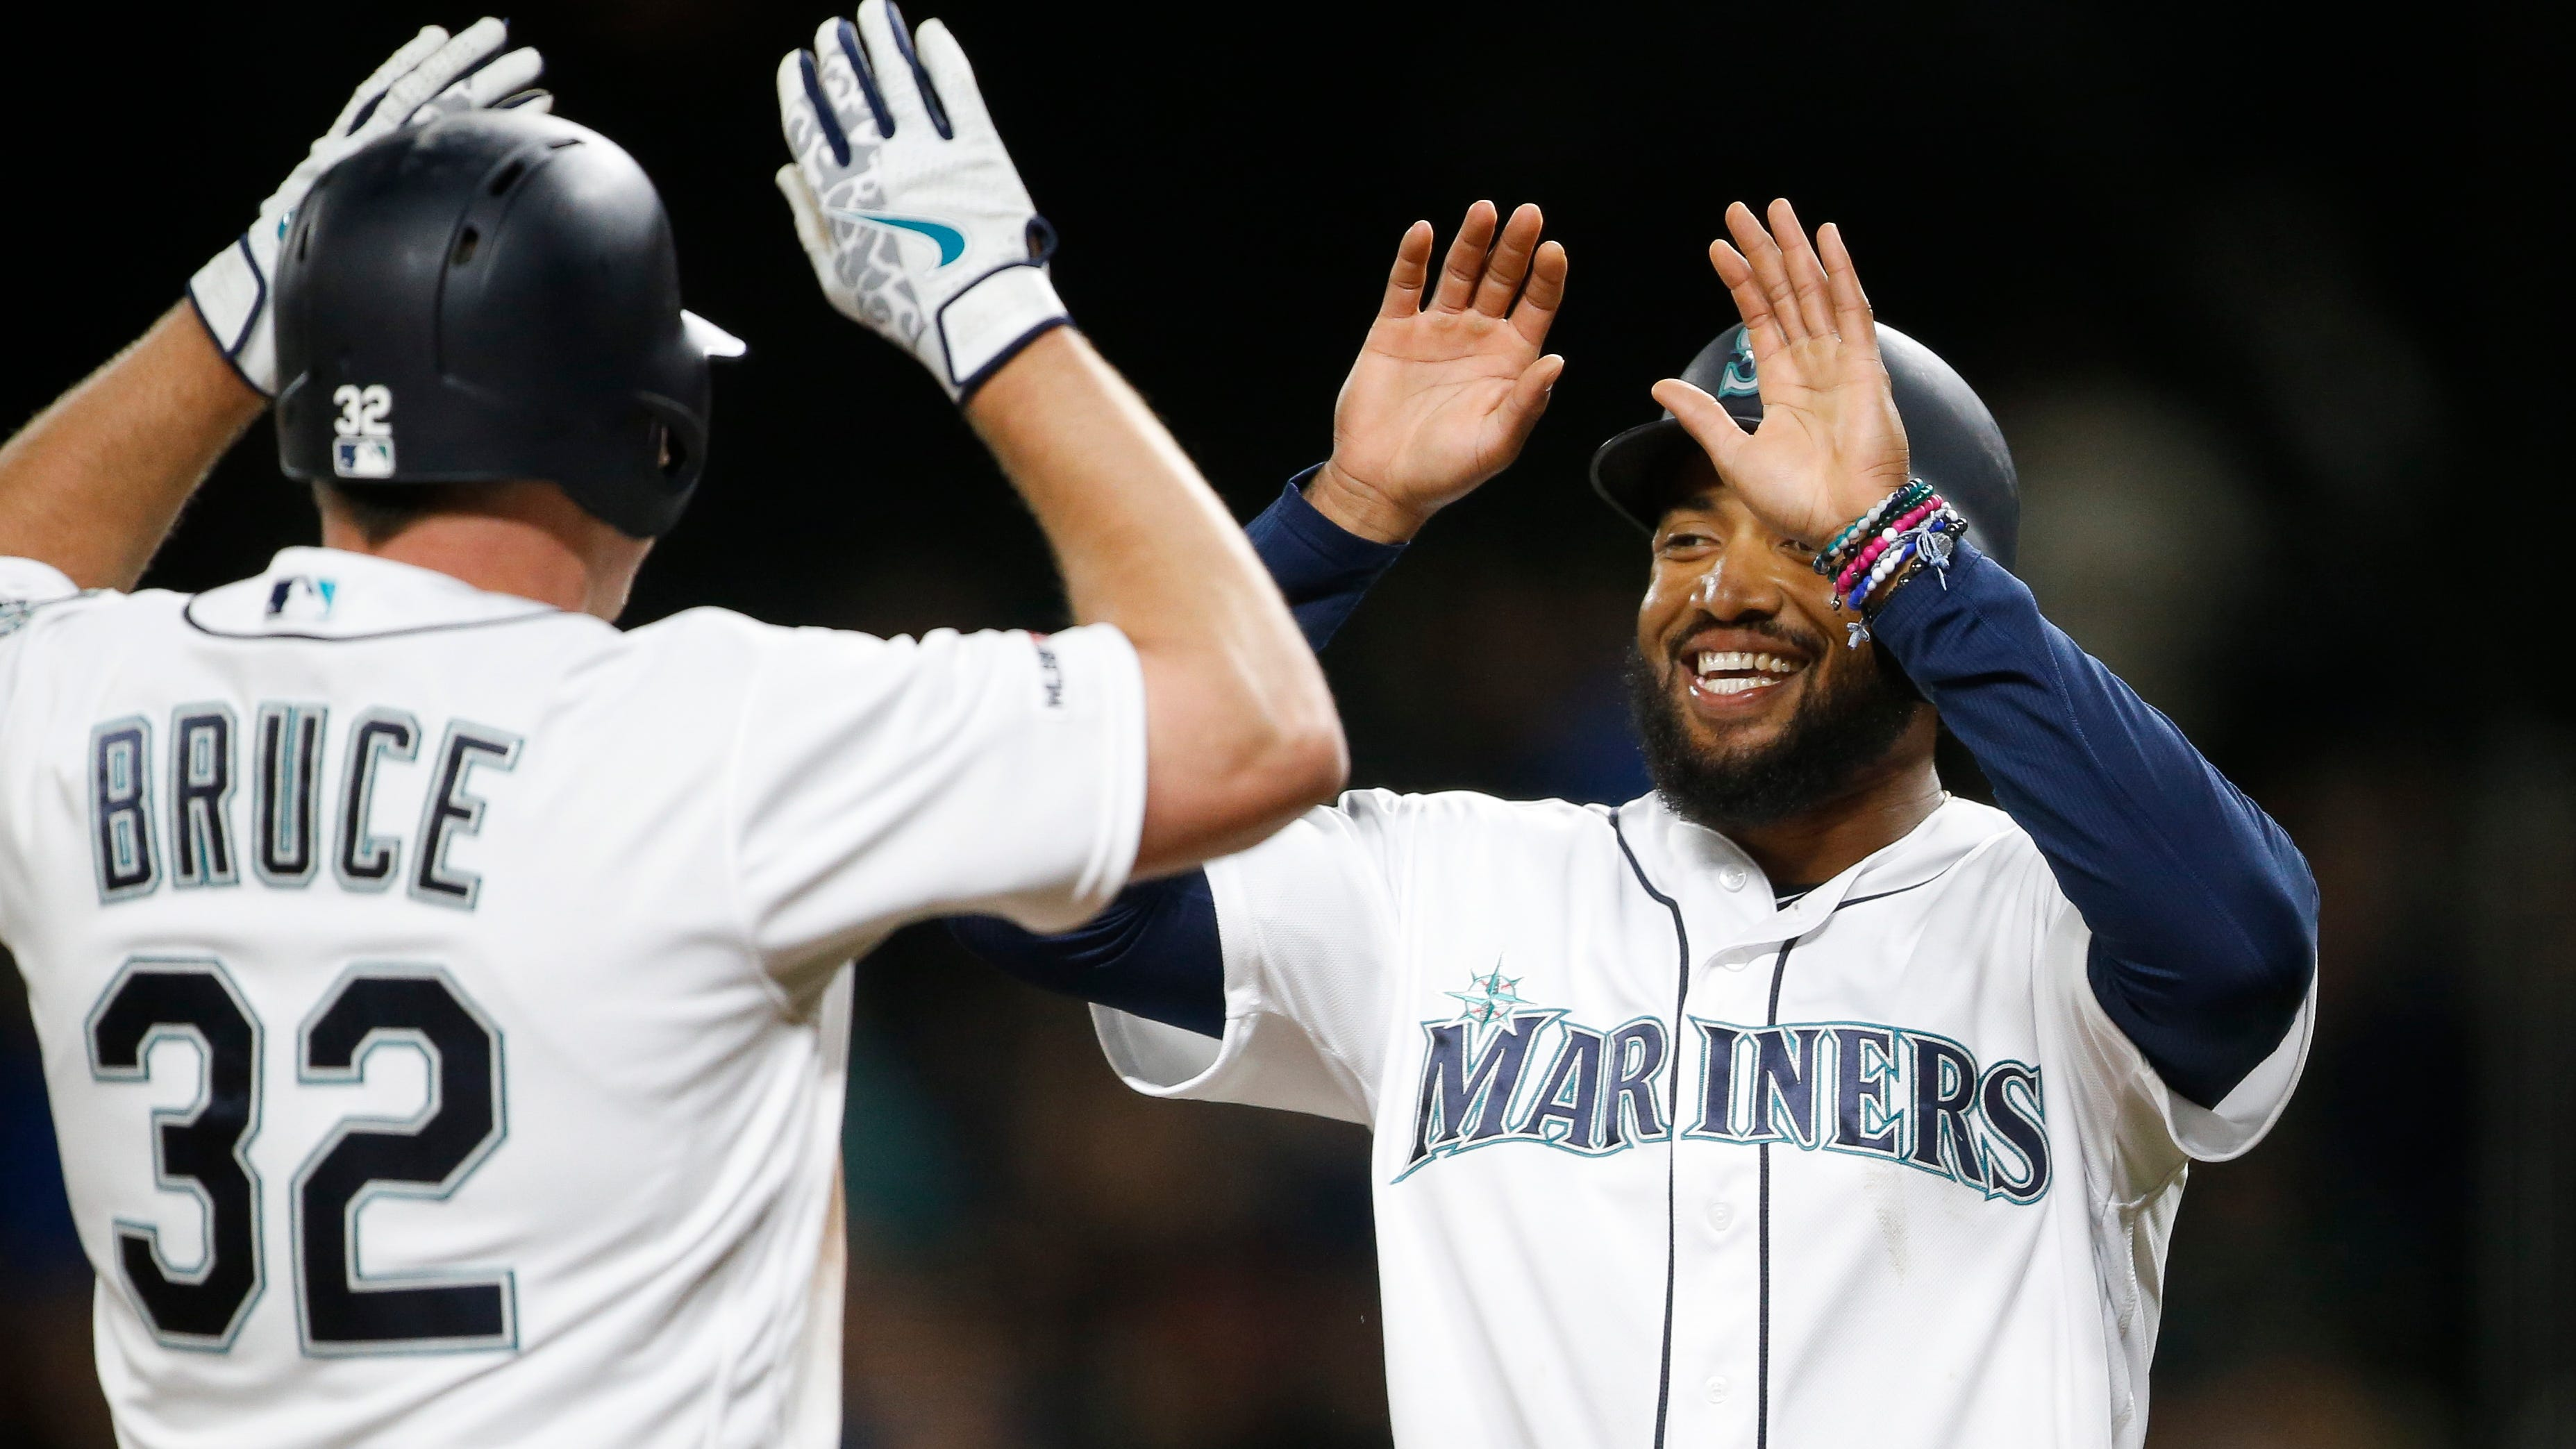 Seattle Mariners Set Record With Home Run In 15 Games To